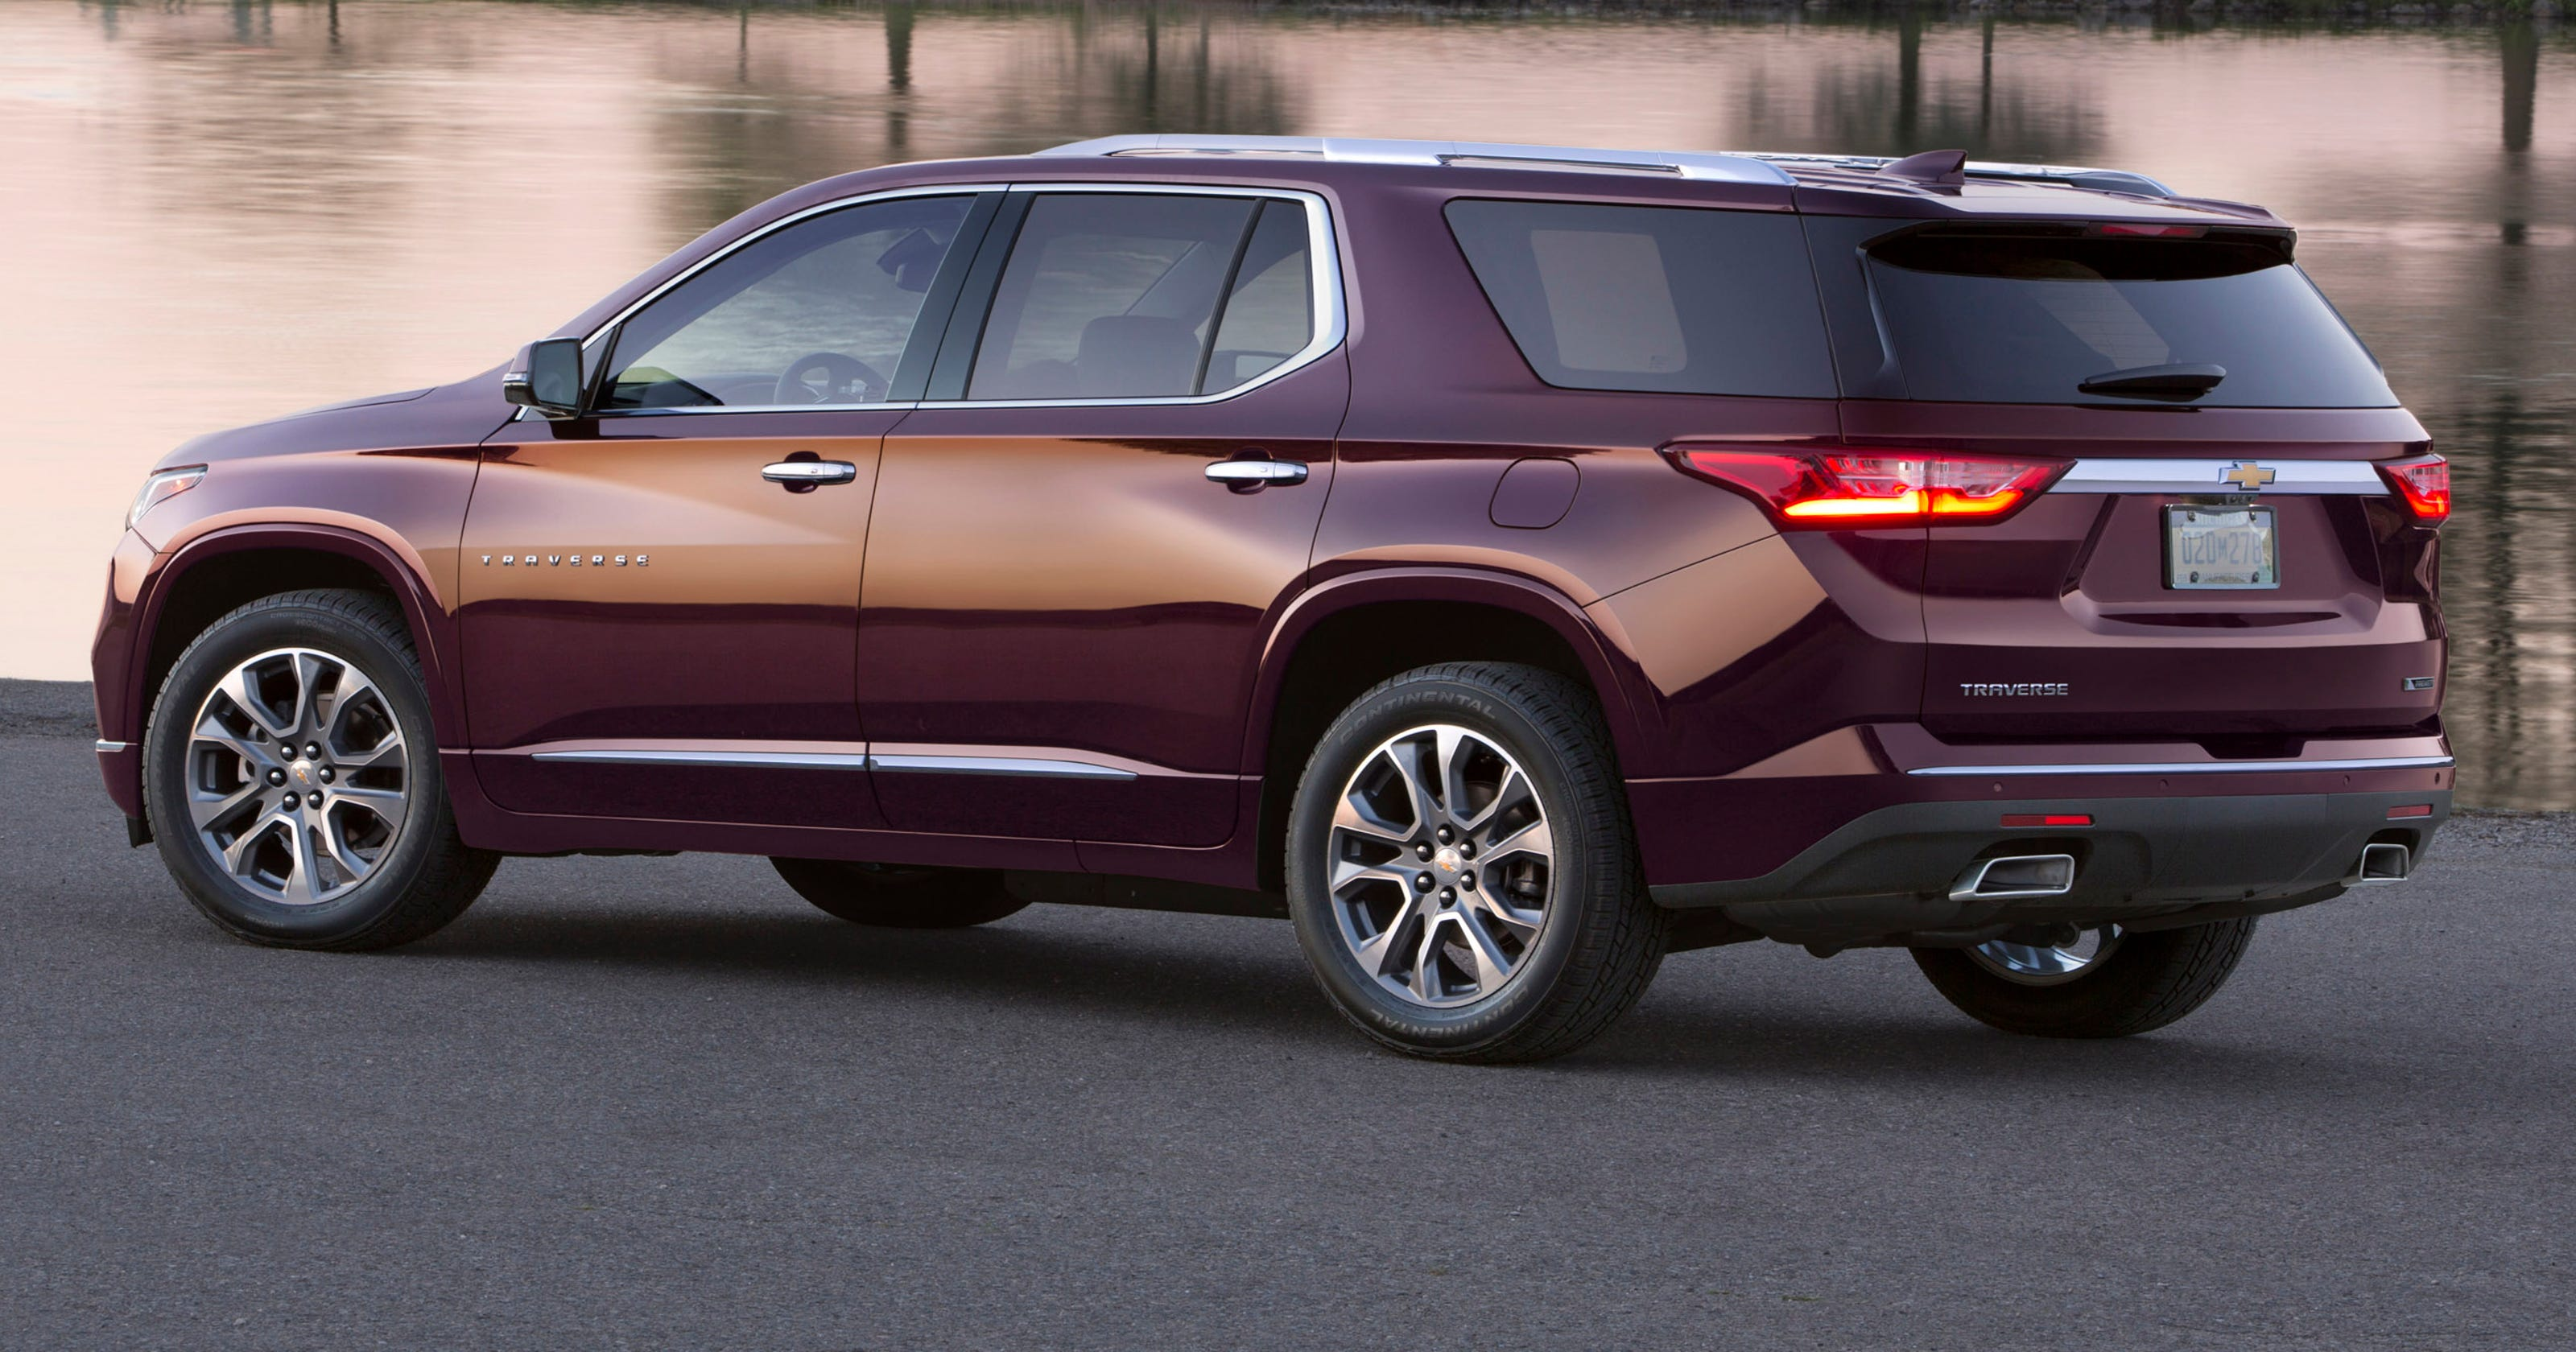 Review: Chevrolet Traverse is a pricey but impressive SUV